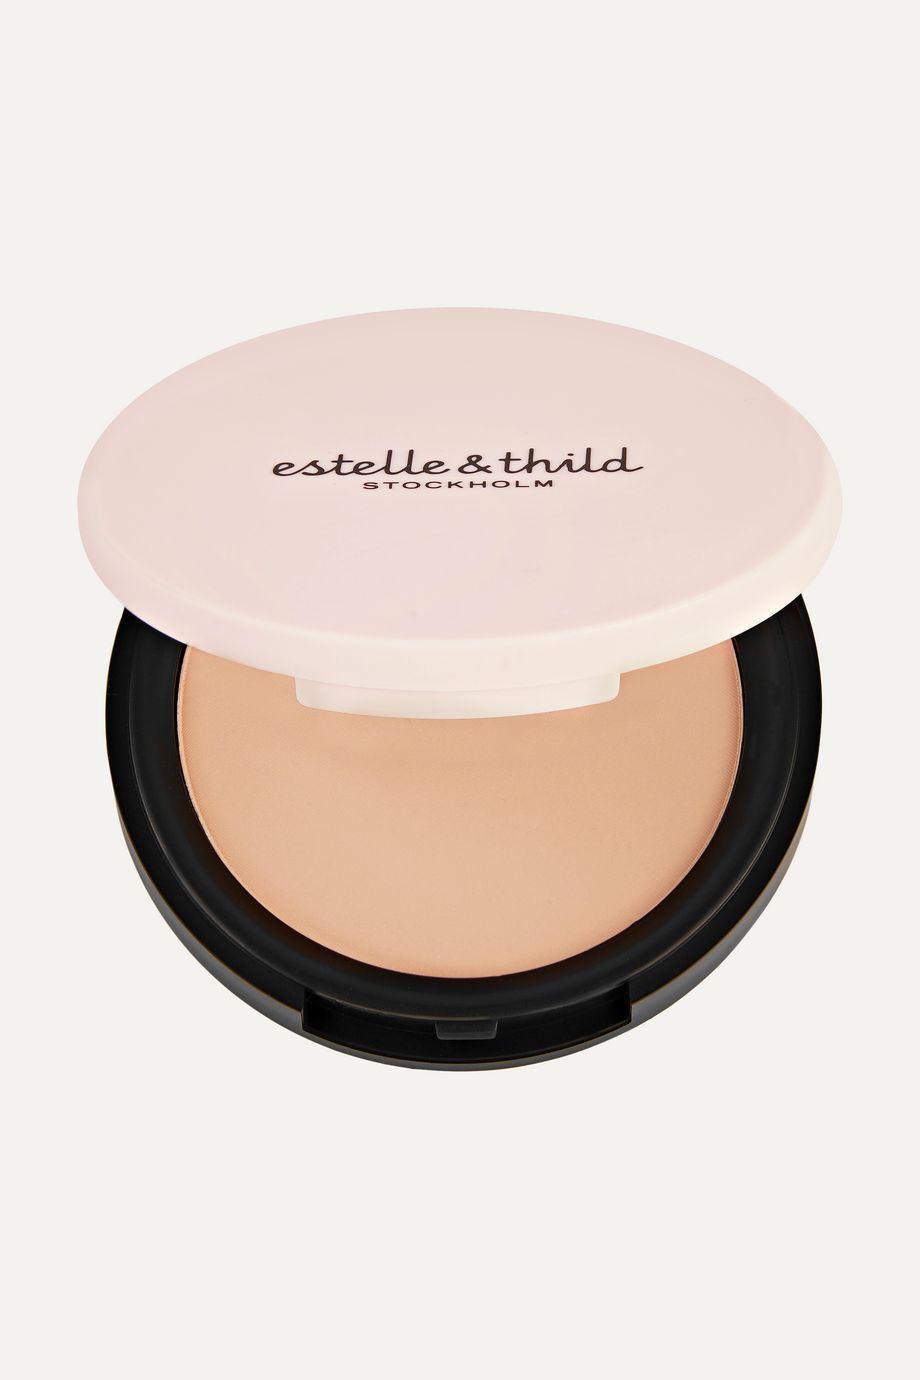 Estelle & Thild BioMineral Silky Finishing Powder - Light Yellow 122